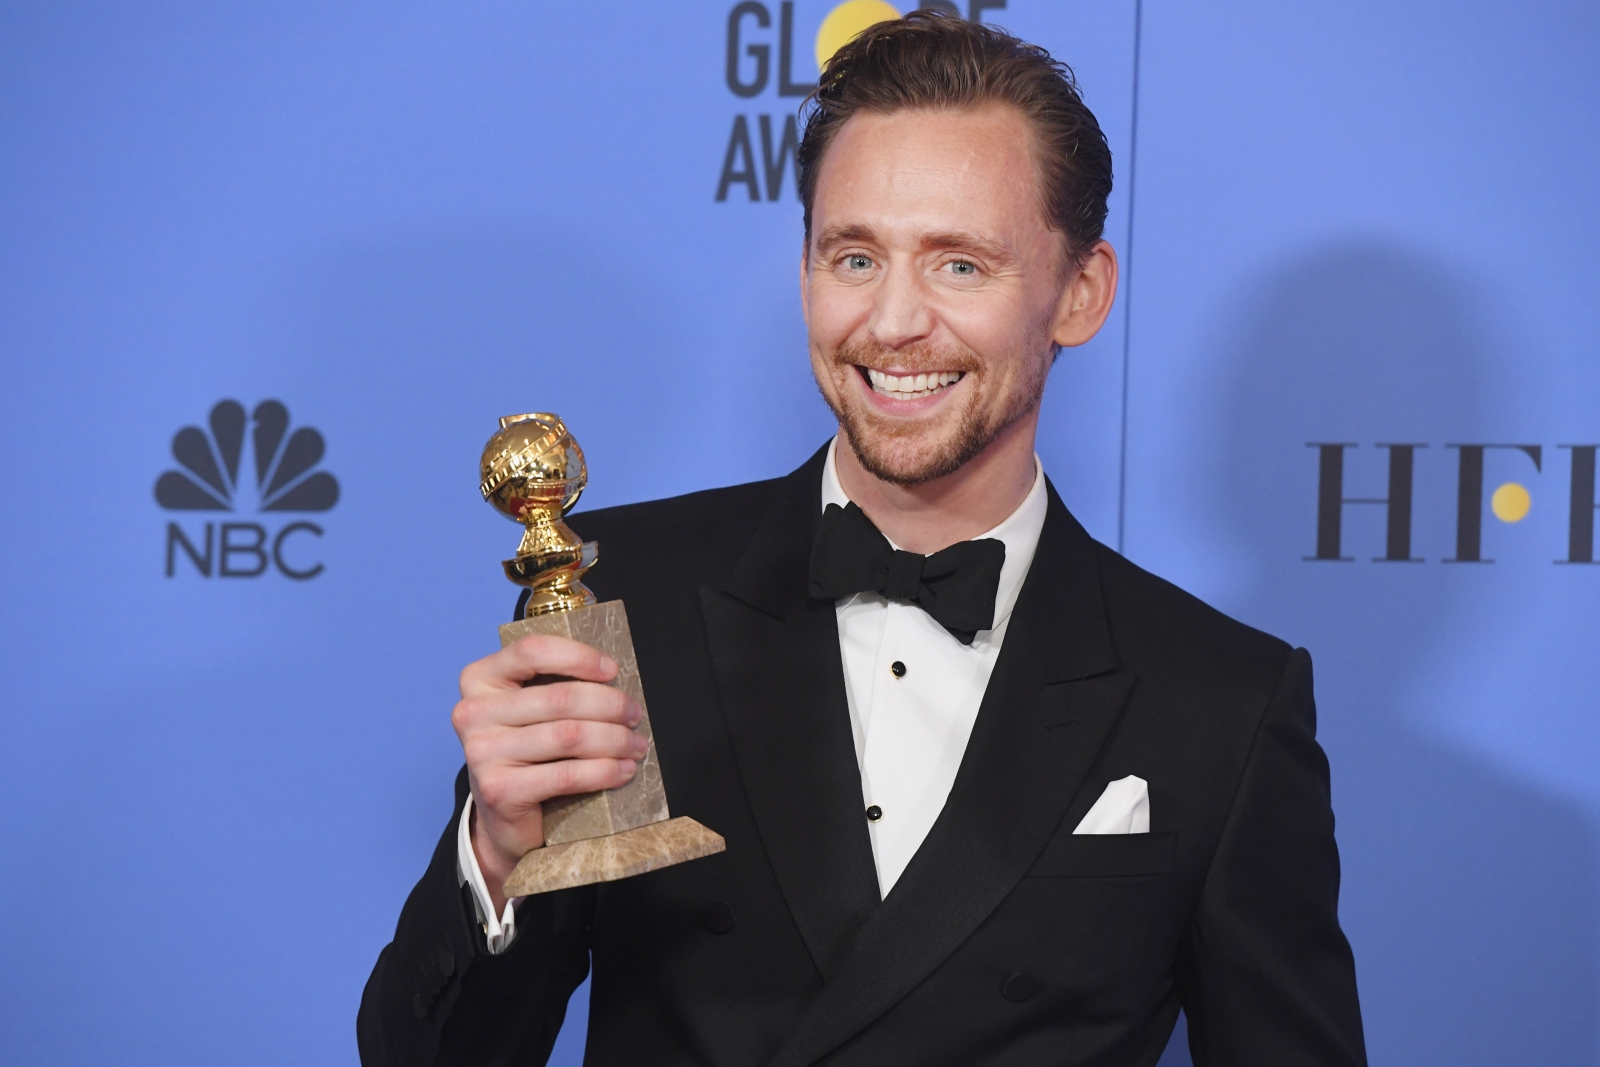 Tom Hiddleston at the Golden Globes 2017